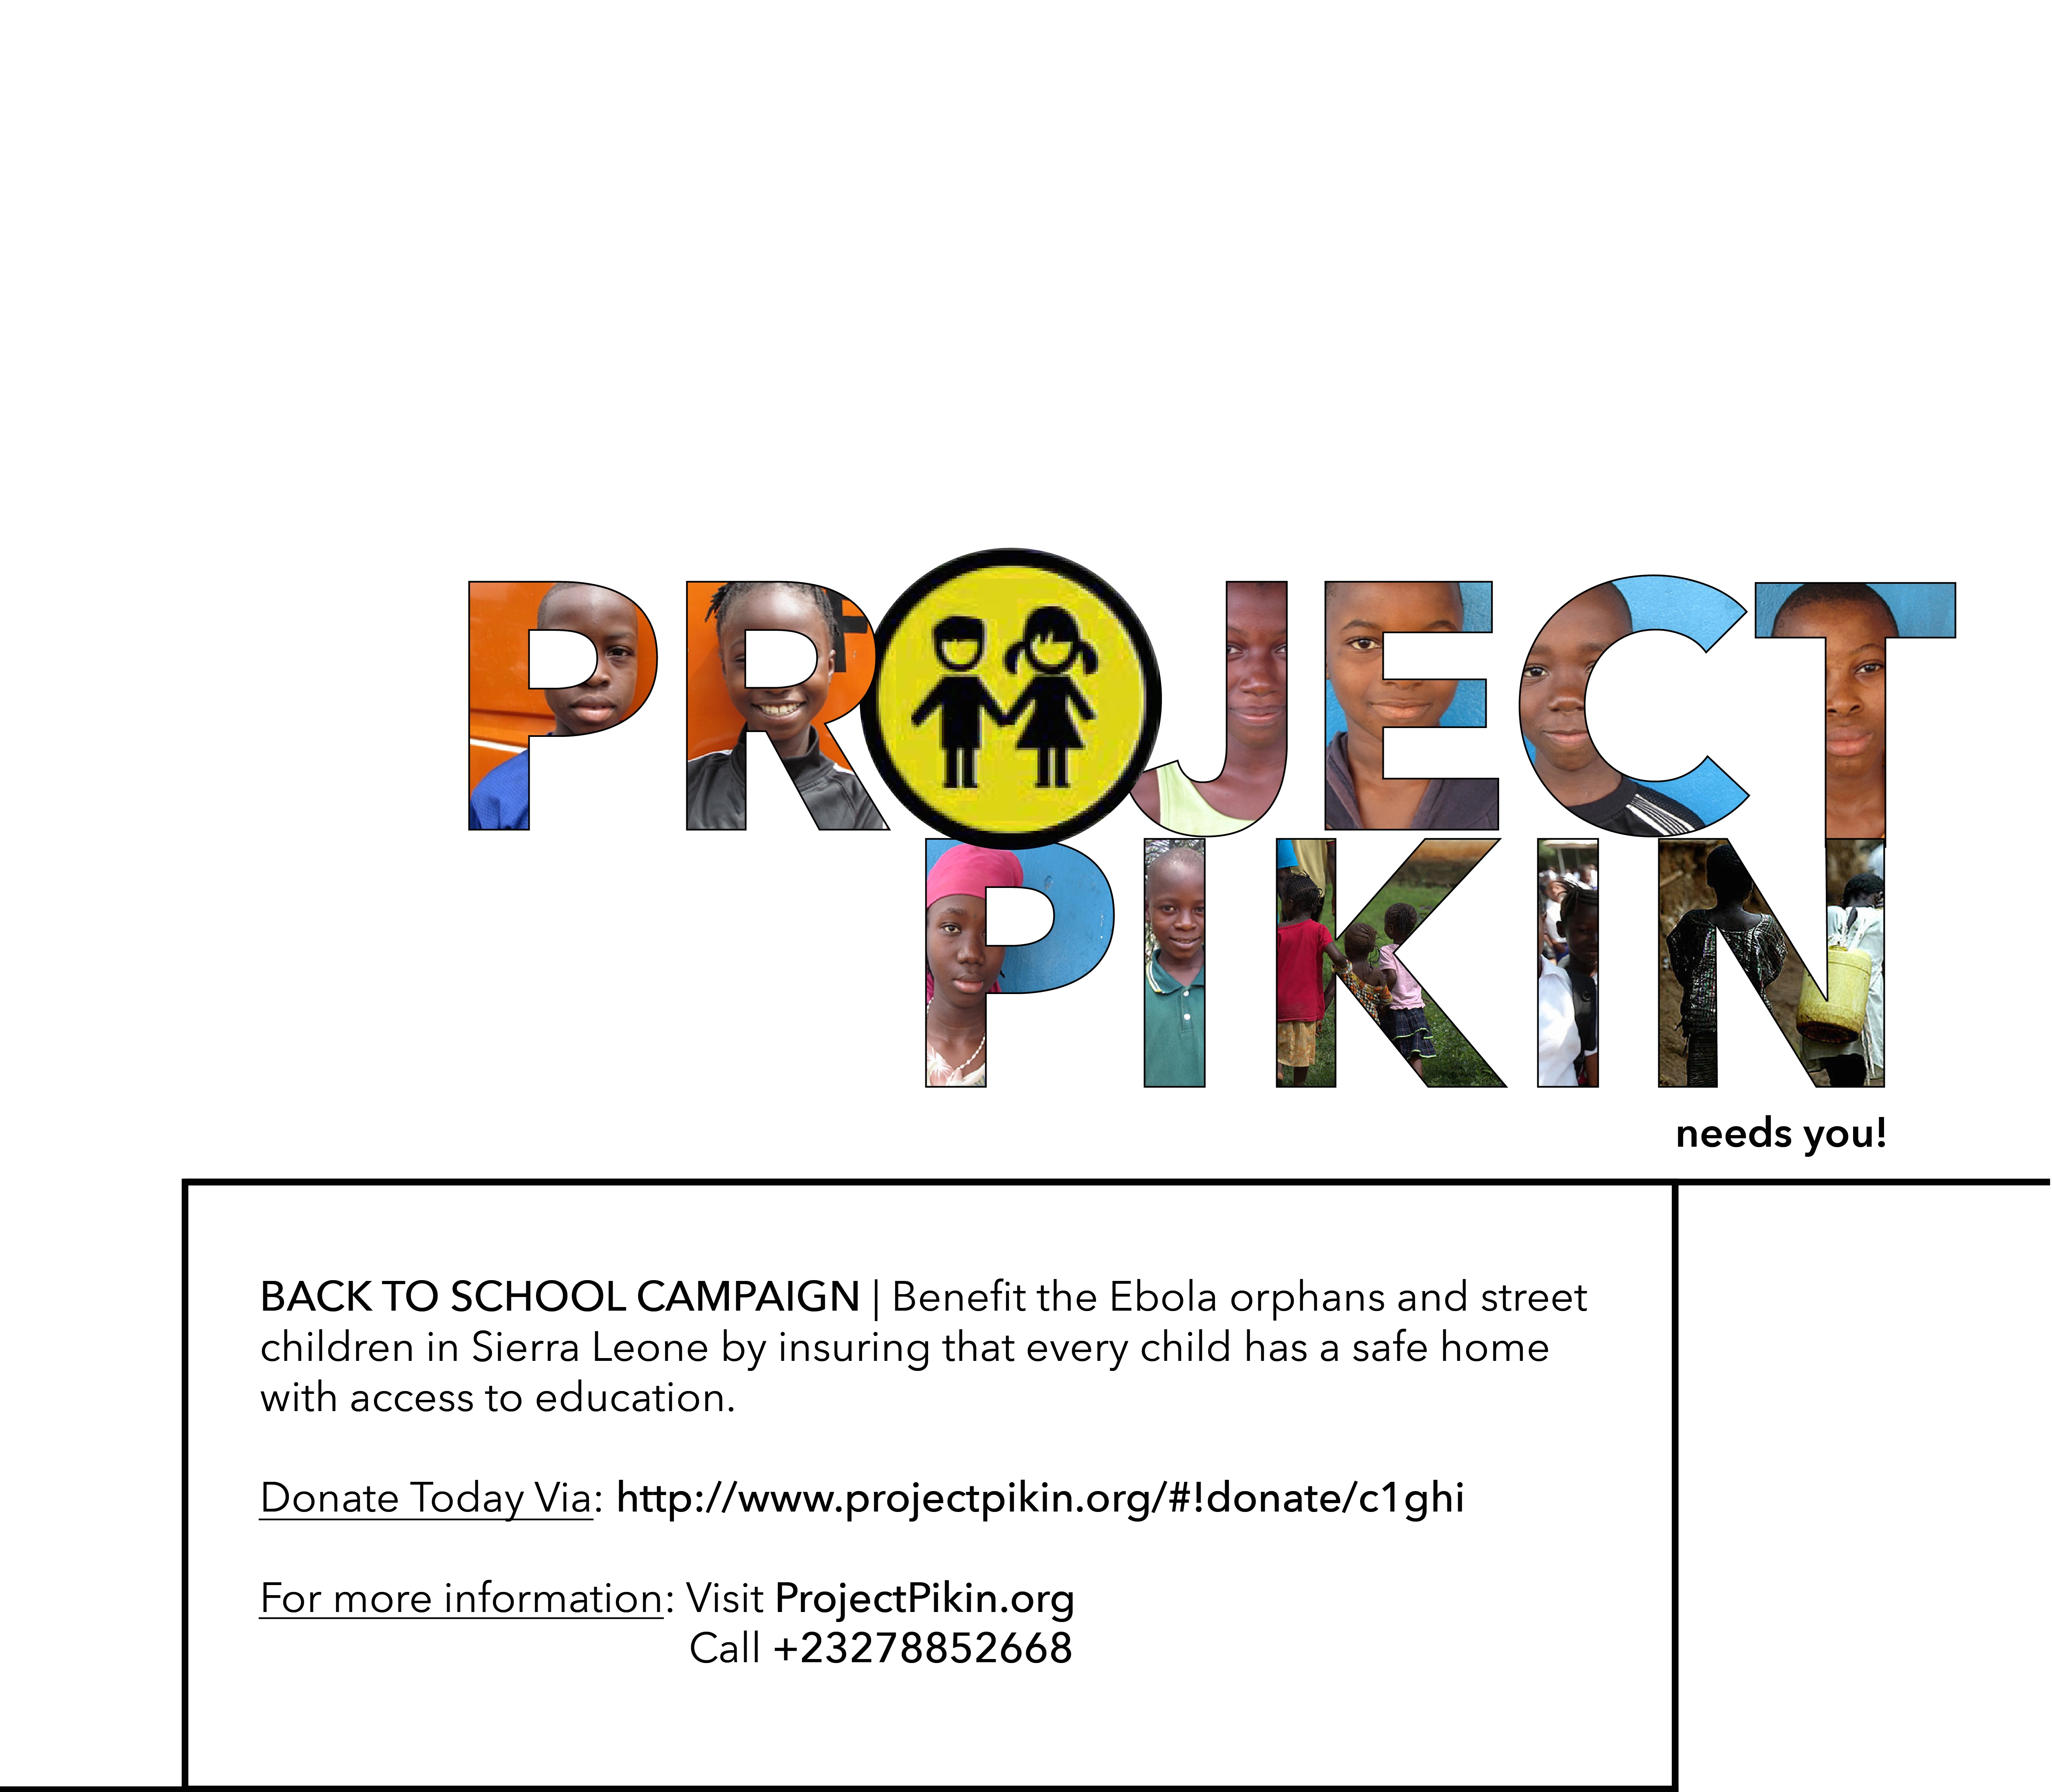 Project Pikin Ad Page